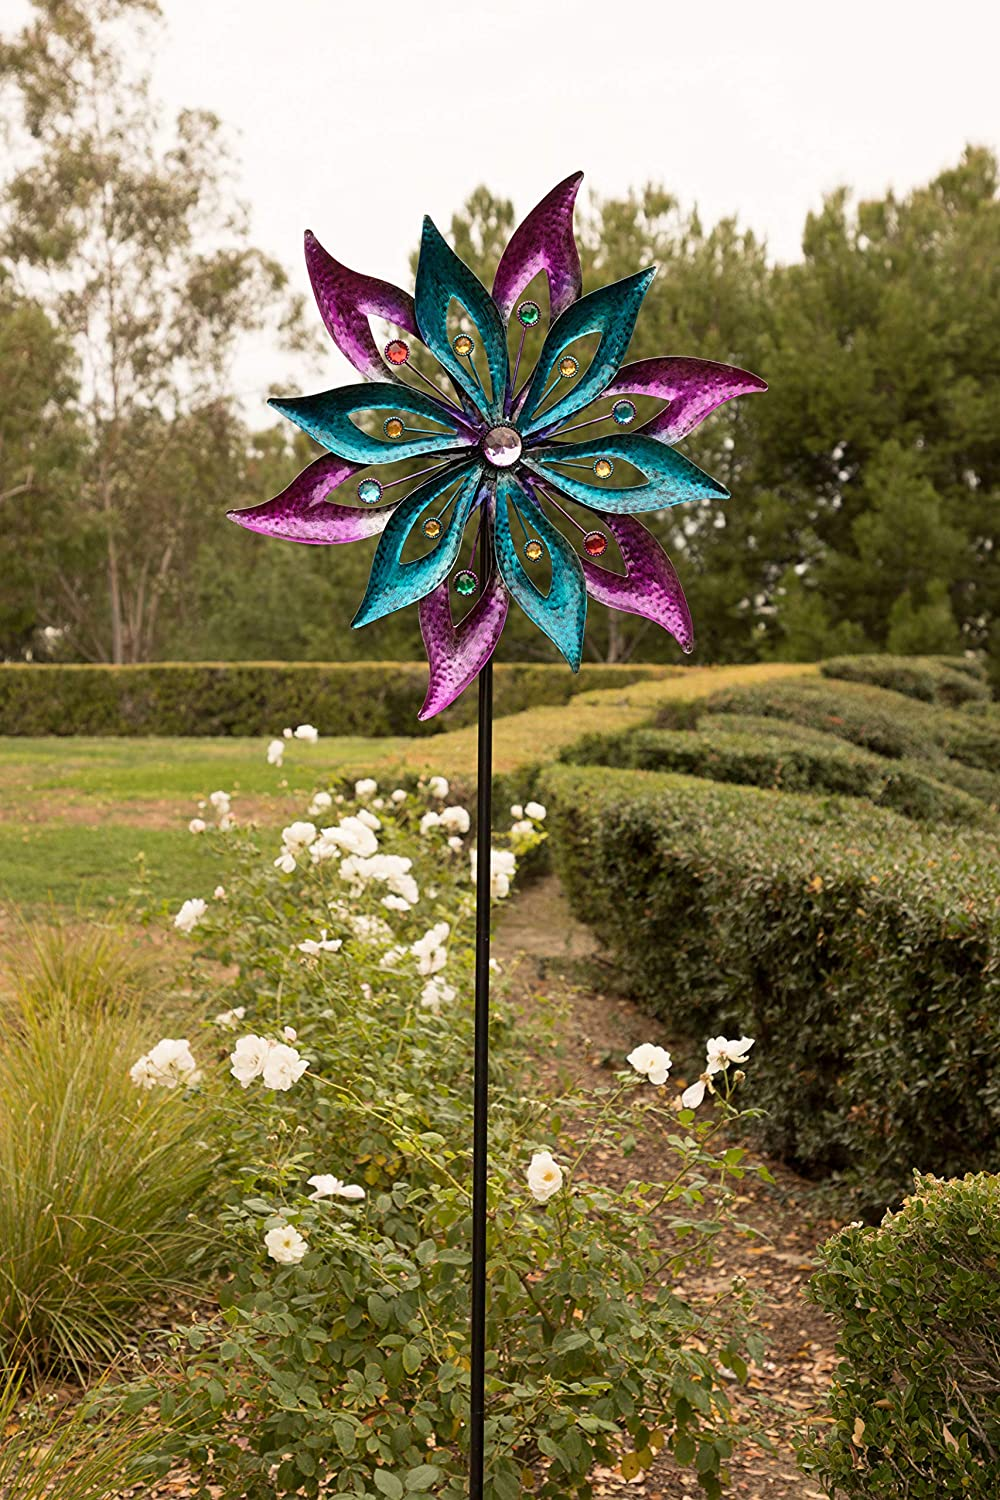 Alpine SLL1872 Dual Floral Kinetic Wind Spinner Garden Stake, 64 inch Tall Purple and Aqua